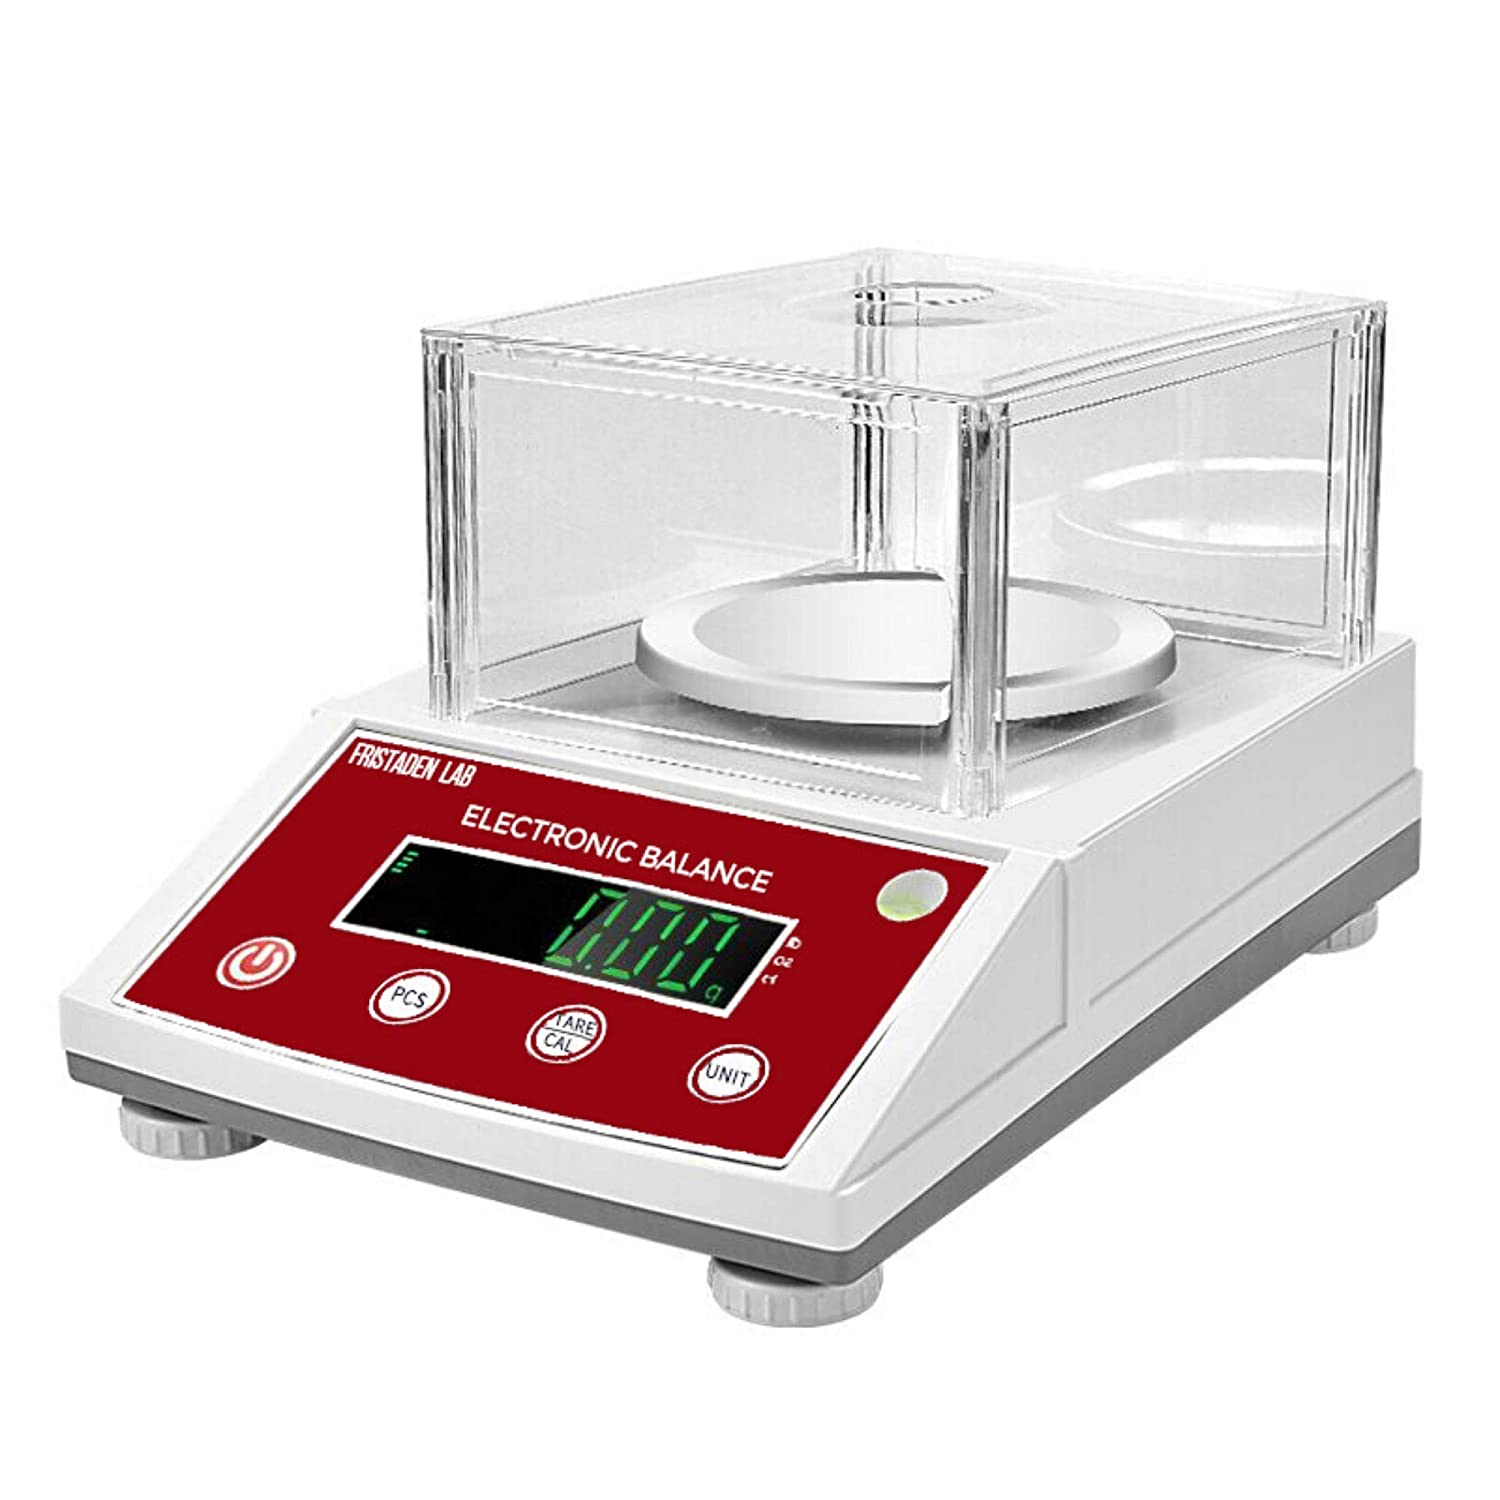 American Fristaden Lab Analytical Balance 1000g x 0.01g | Digital Scale for Grams, Ounces, Pounds and Carats | Precision Electronic 01 Gram Scale for Laboratory, Jewelry and Businesses | 1YR Warranty